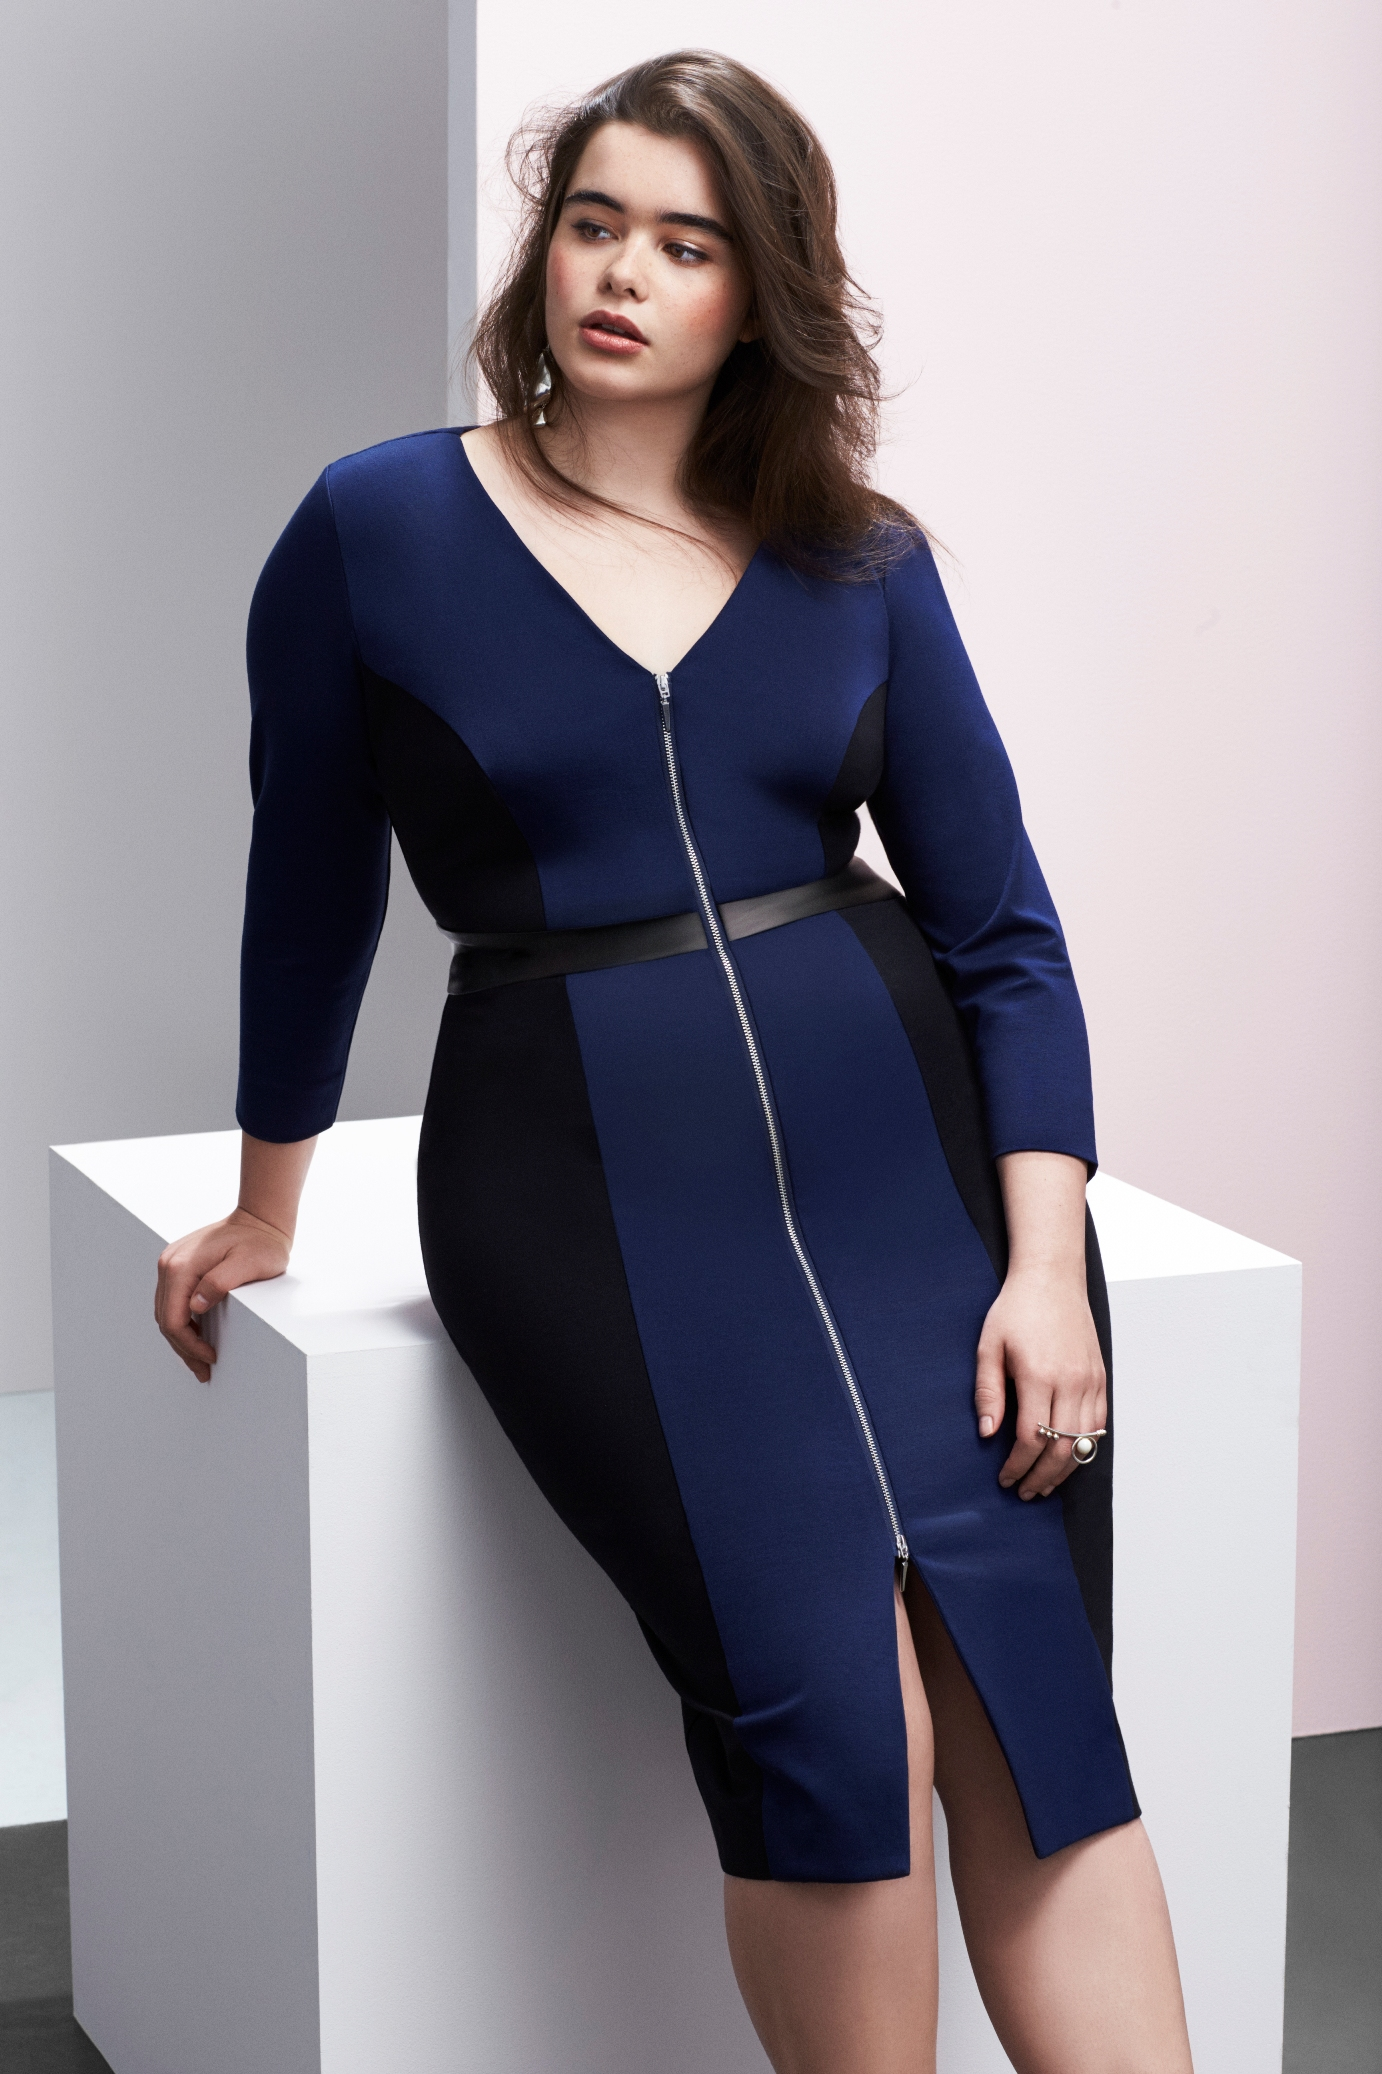 Lane Bryant Prabal Gurung 0105